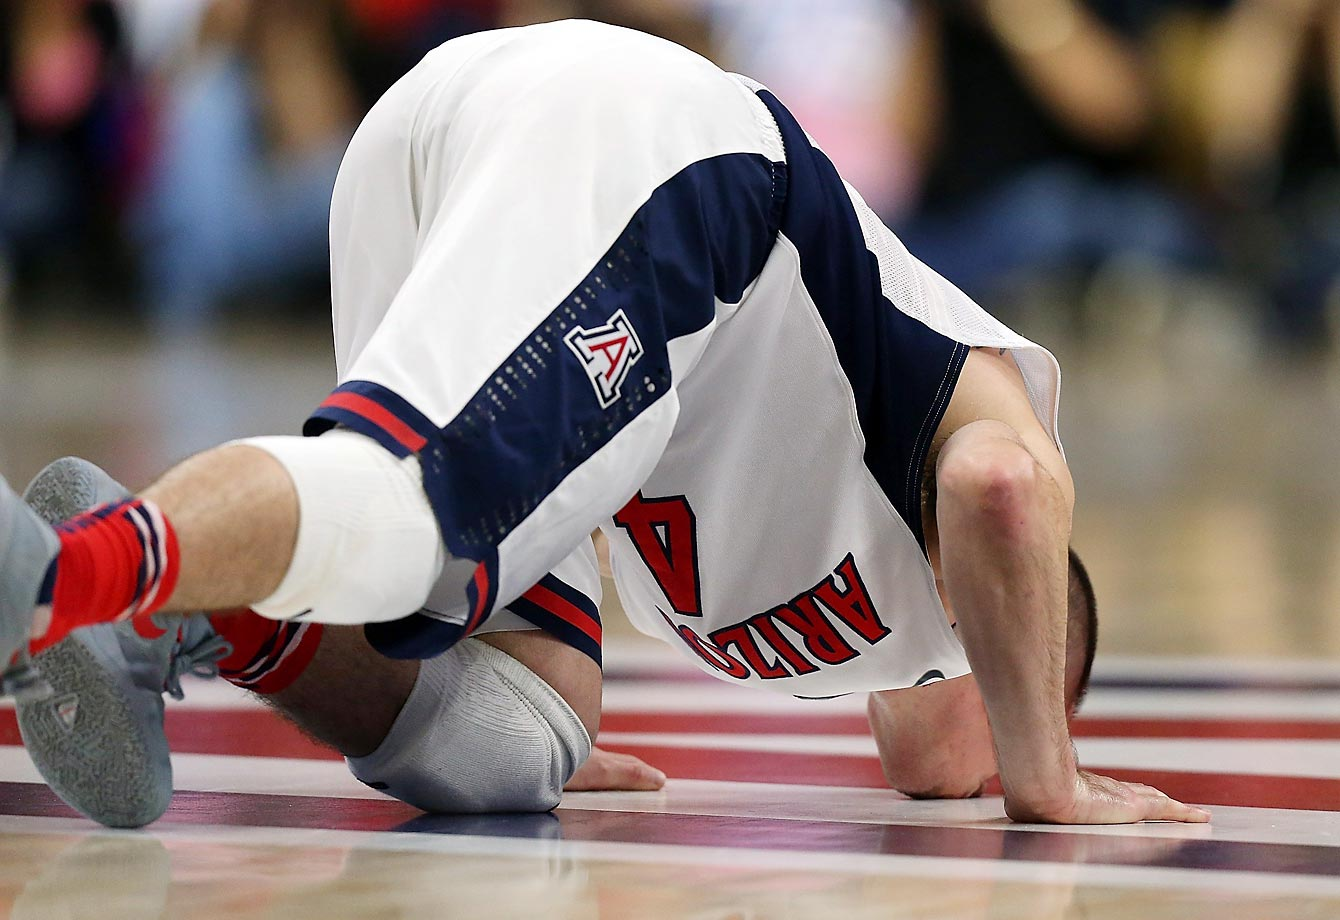 Arizona guard T.J. McConnell kisses the Arizona logo during the second half of a Pac-12 game against Stanford.